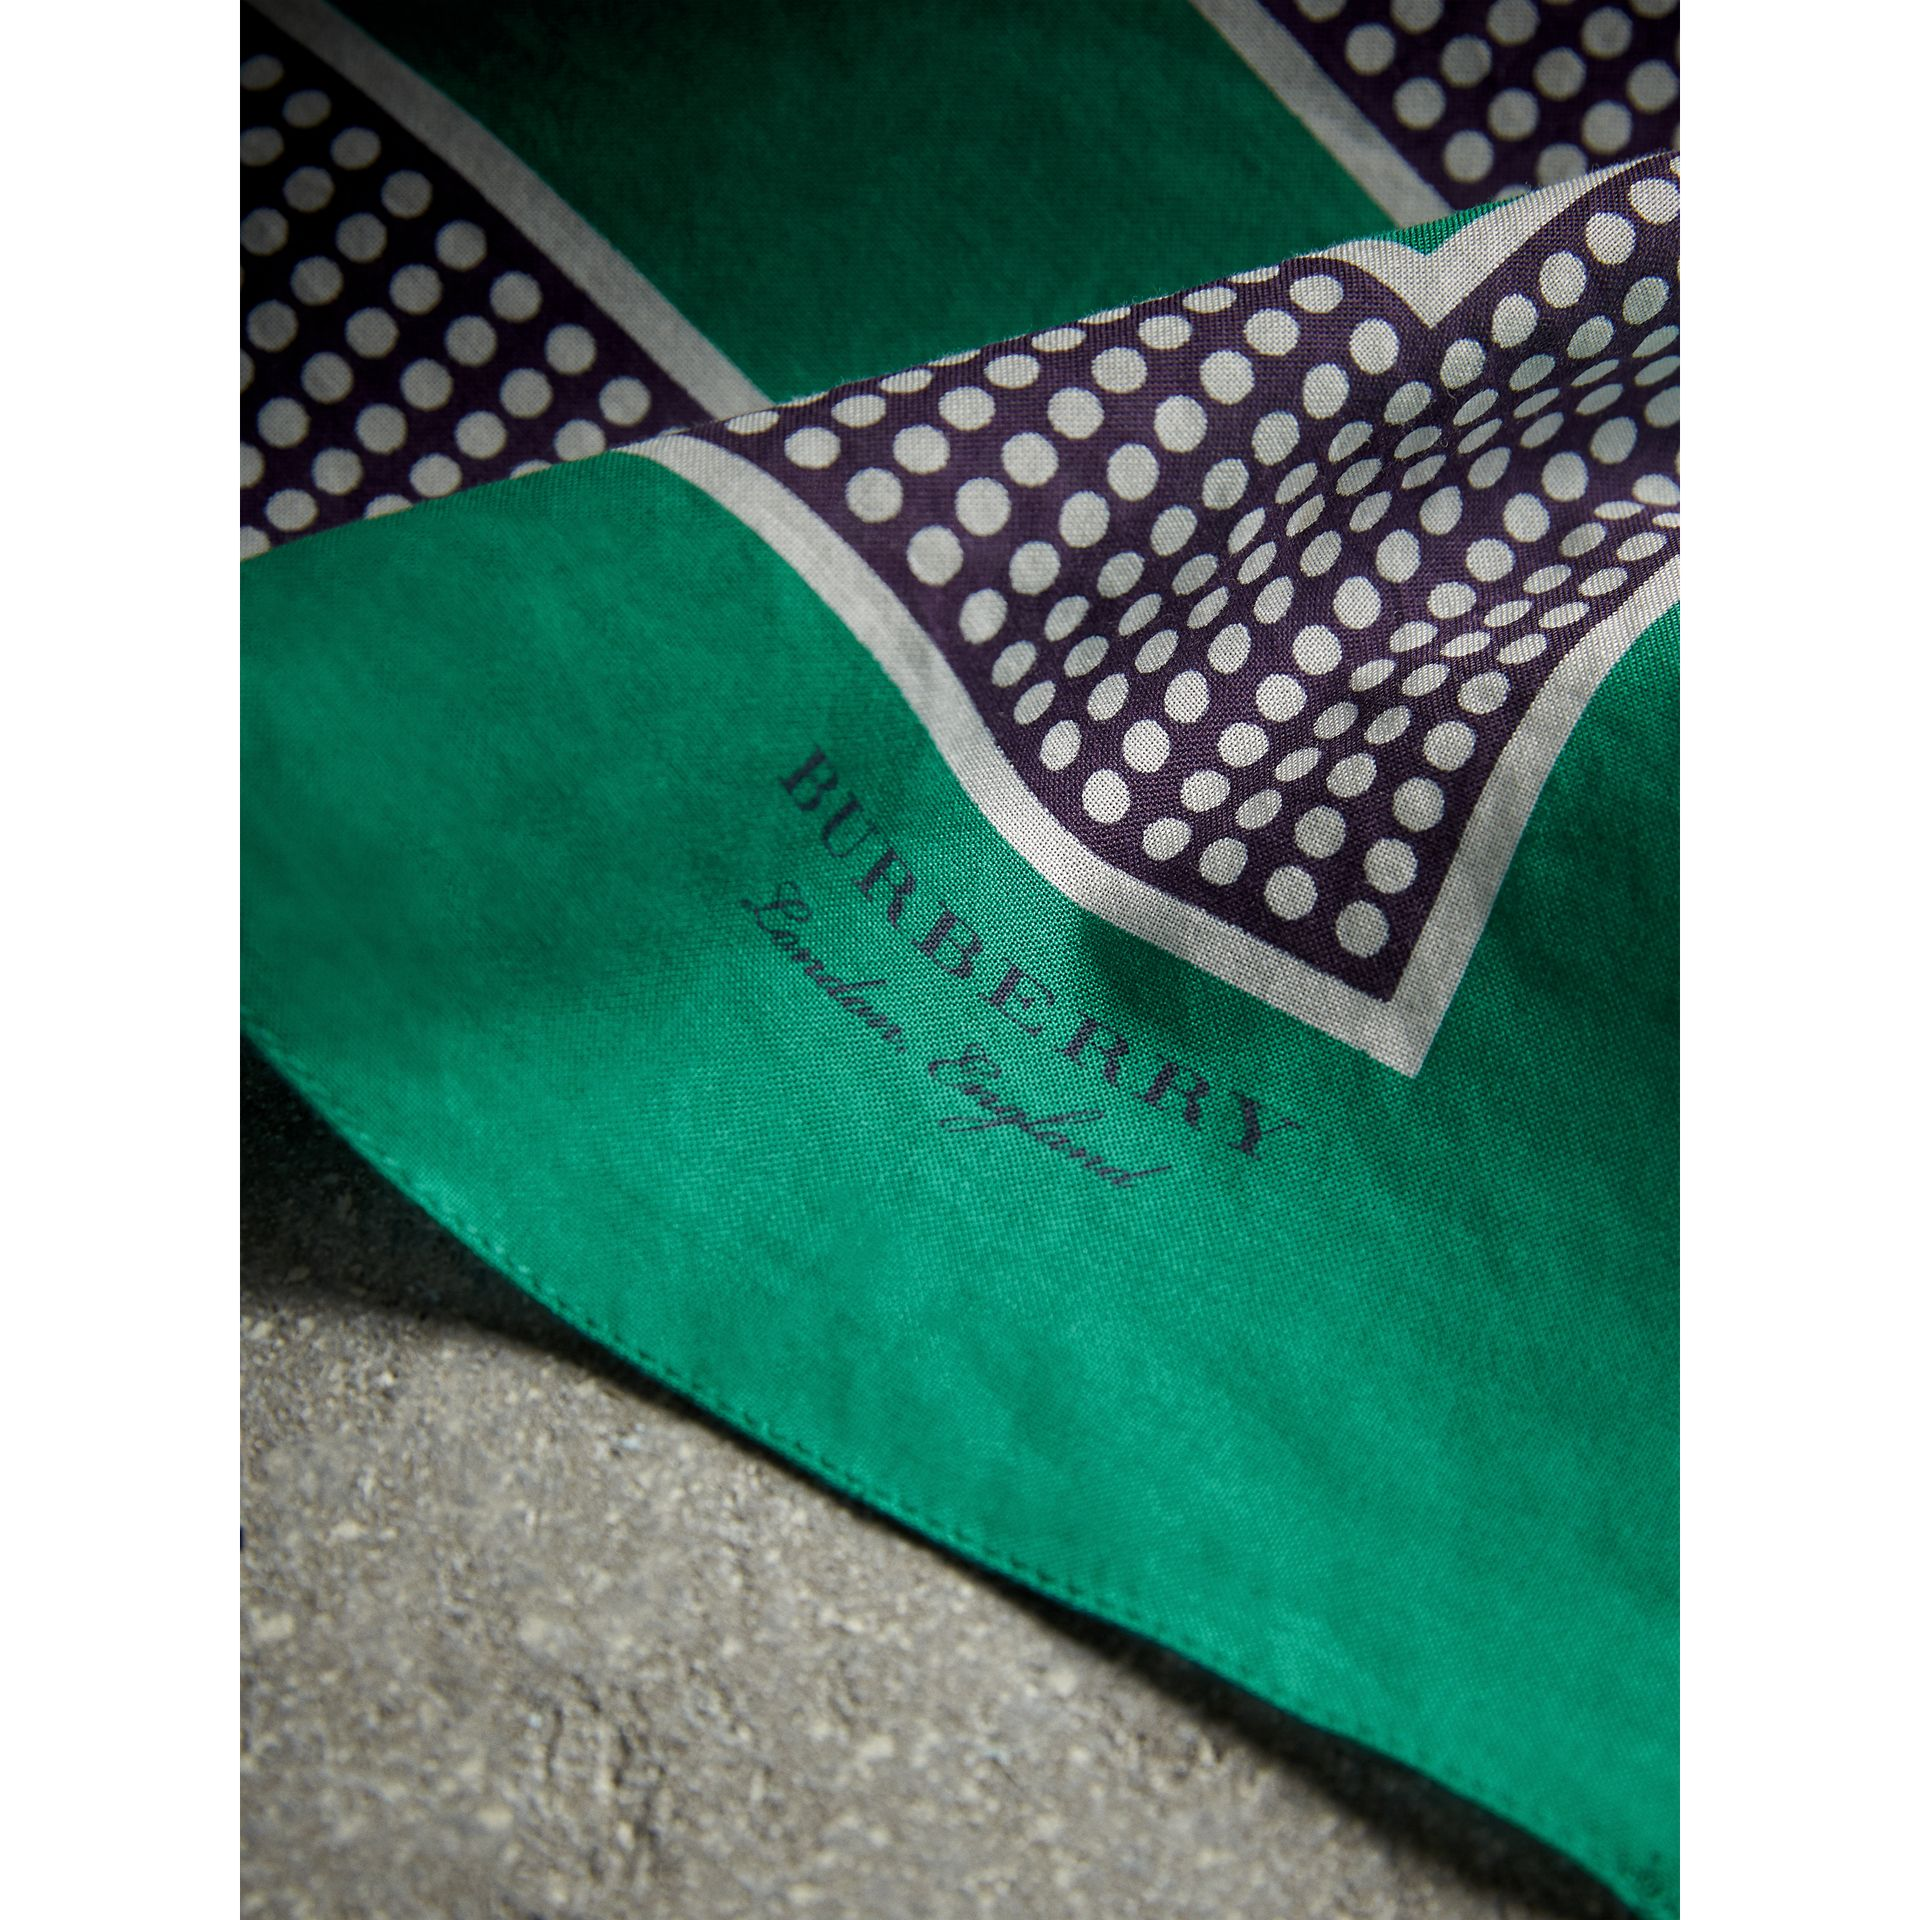 Dot and Stripe Print Cotton Square Scarf in Tourmaline Green | Burberry - gallery image 1